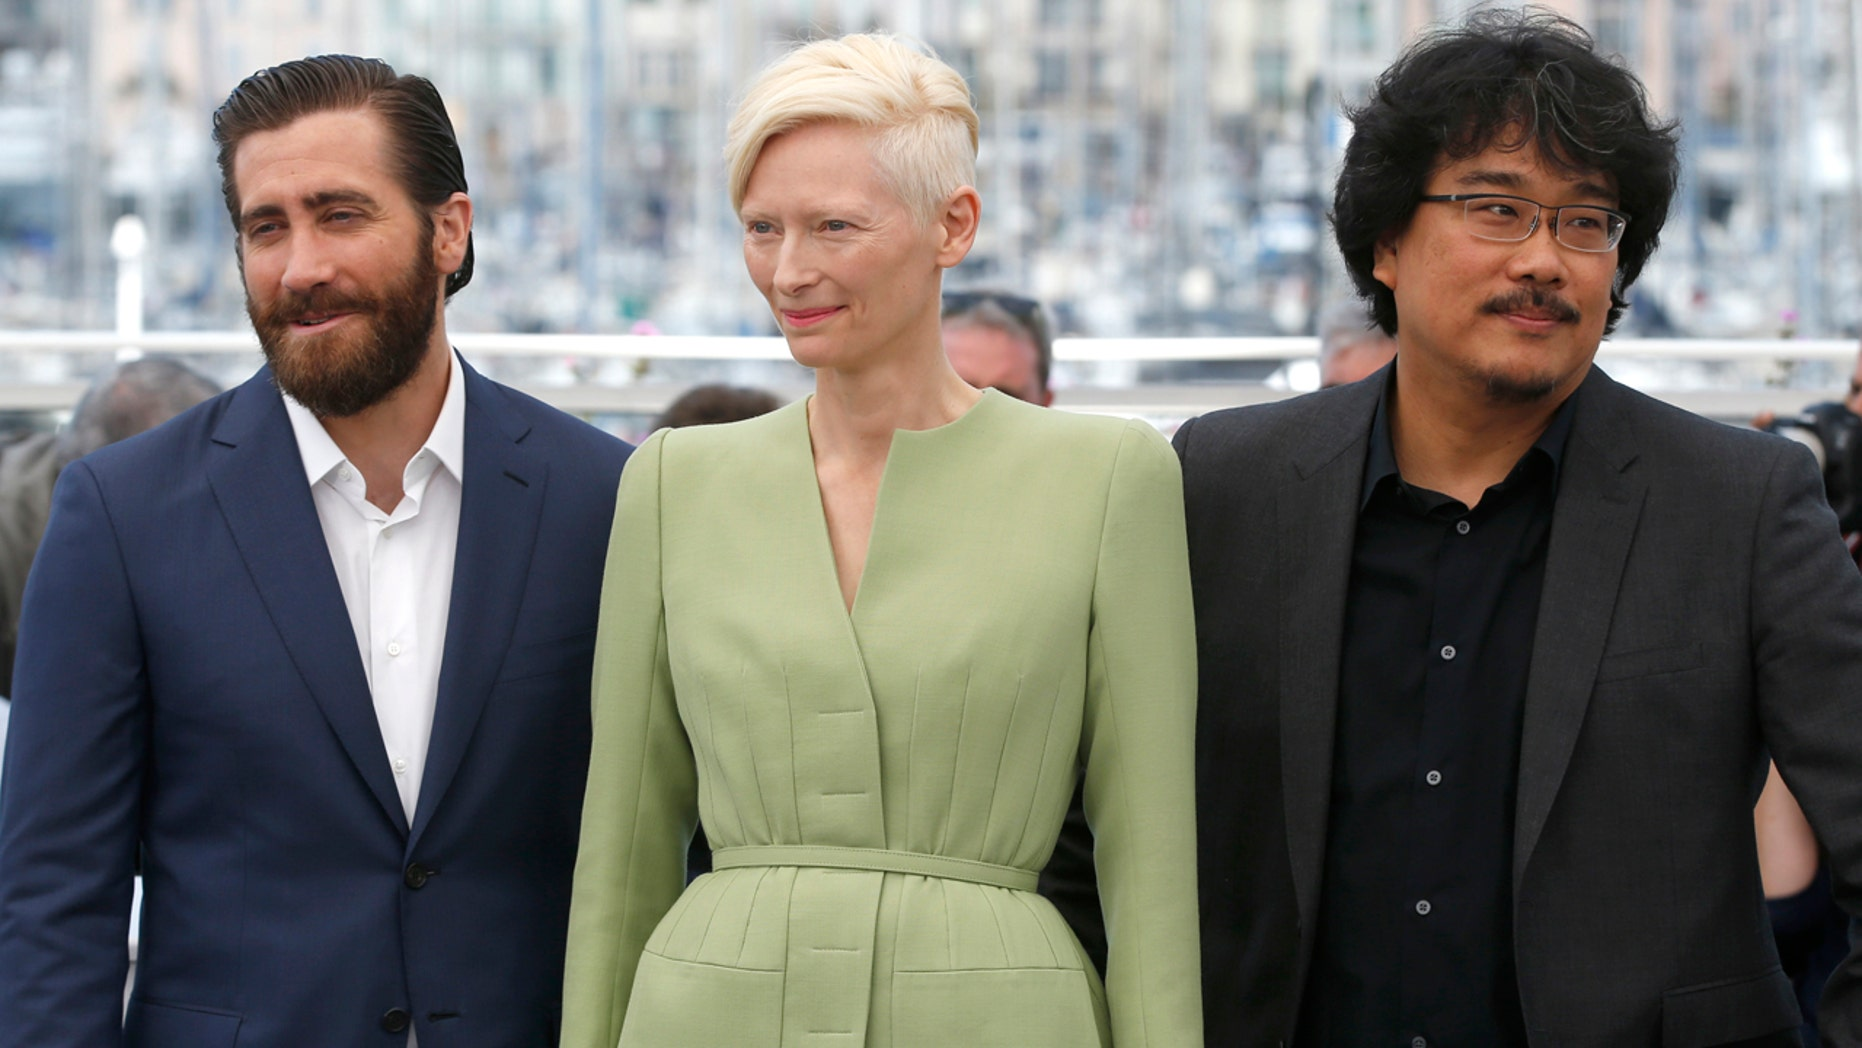 Actors Jake Gyllenhaal, from left, Tilda Swinton and director Bong Joon-Ho pose for photographers during the photo call for the film Okja at the 70th international film festival, Cannes, southern France, Friday, May 19, 2017. (AP Photo/Alastair Grant)